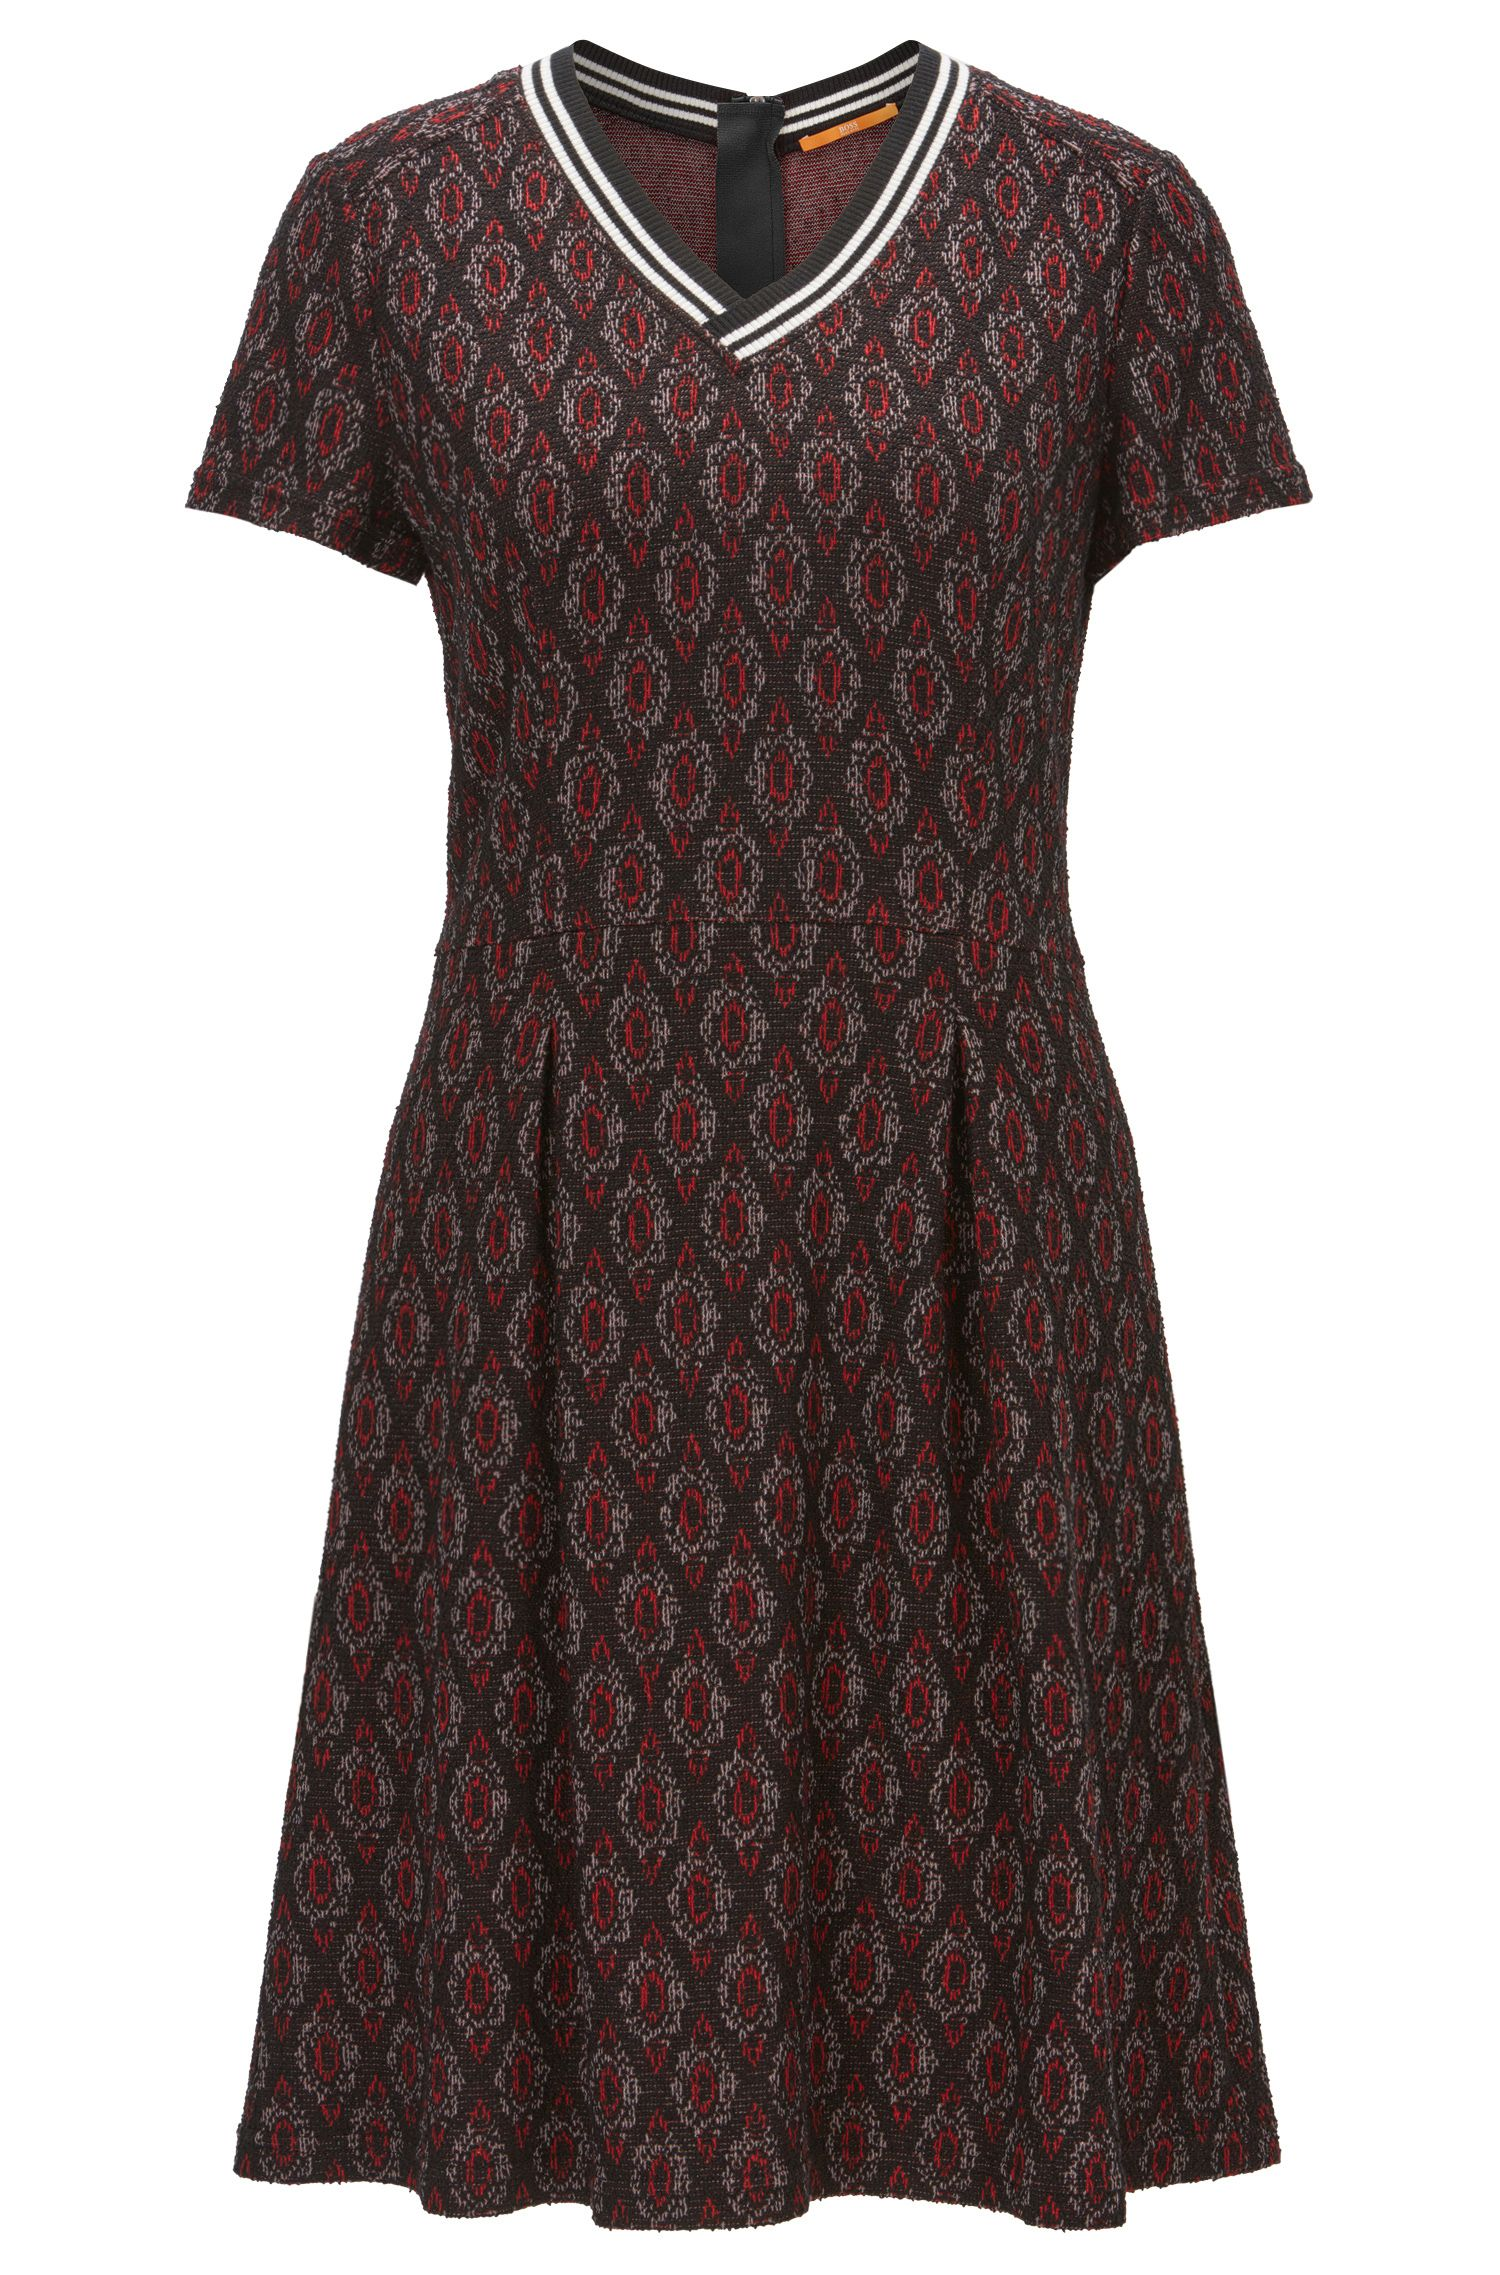 Waisted dress in jacquard jersey